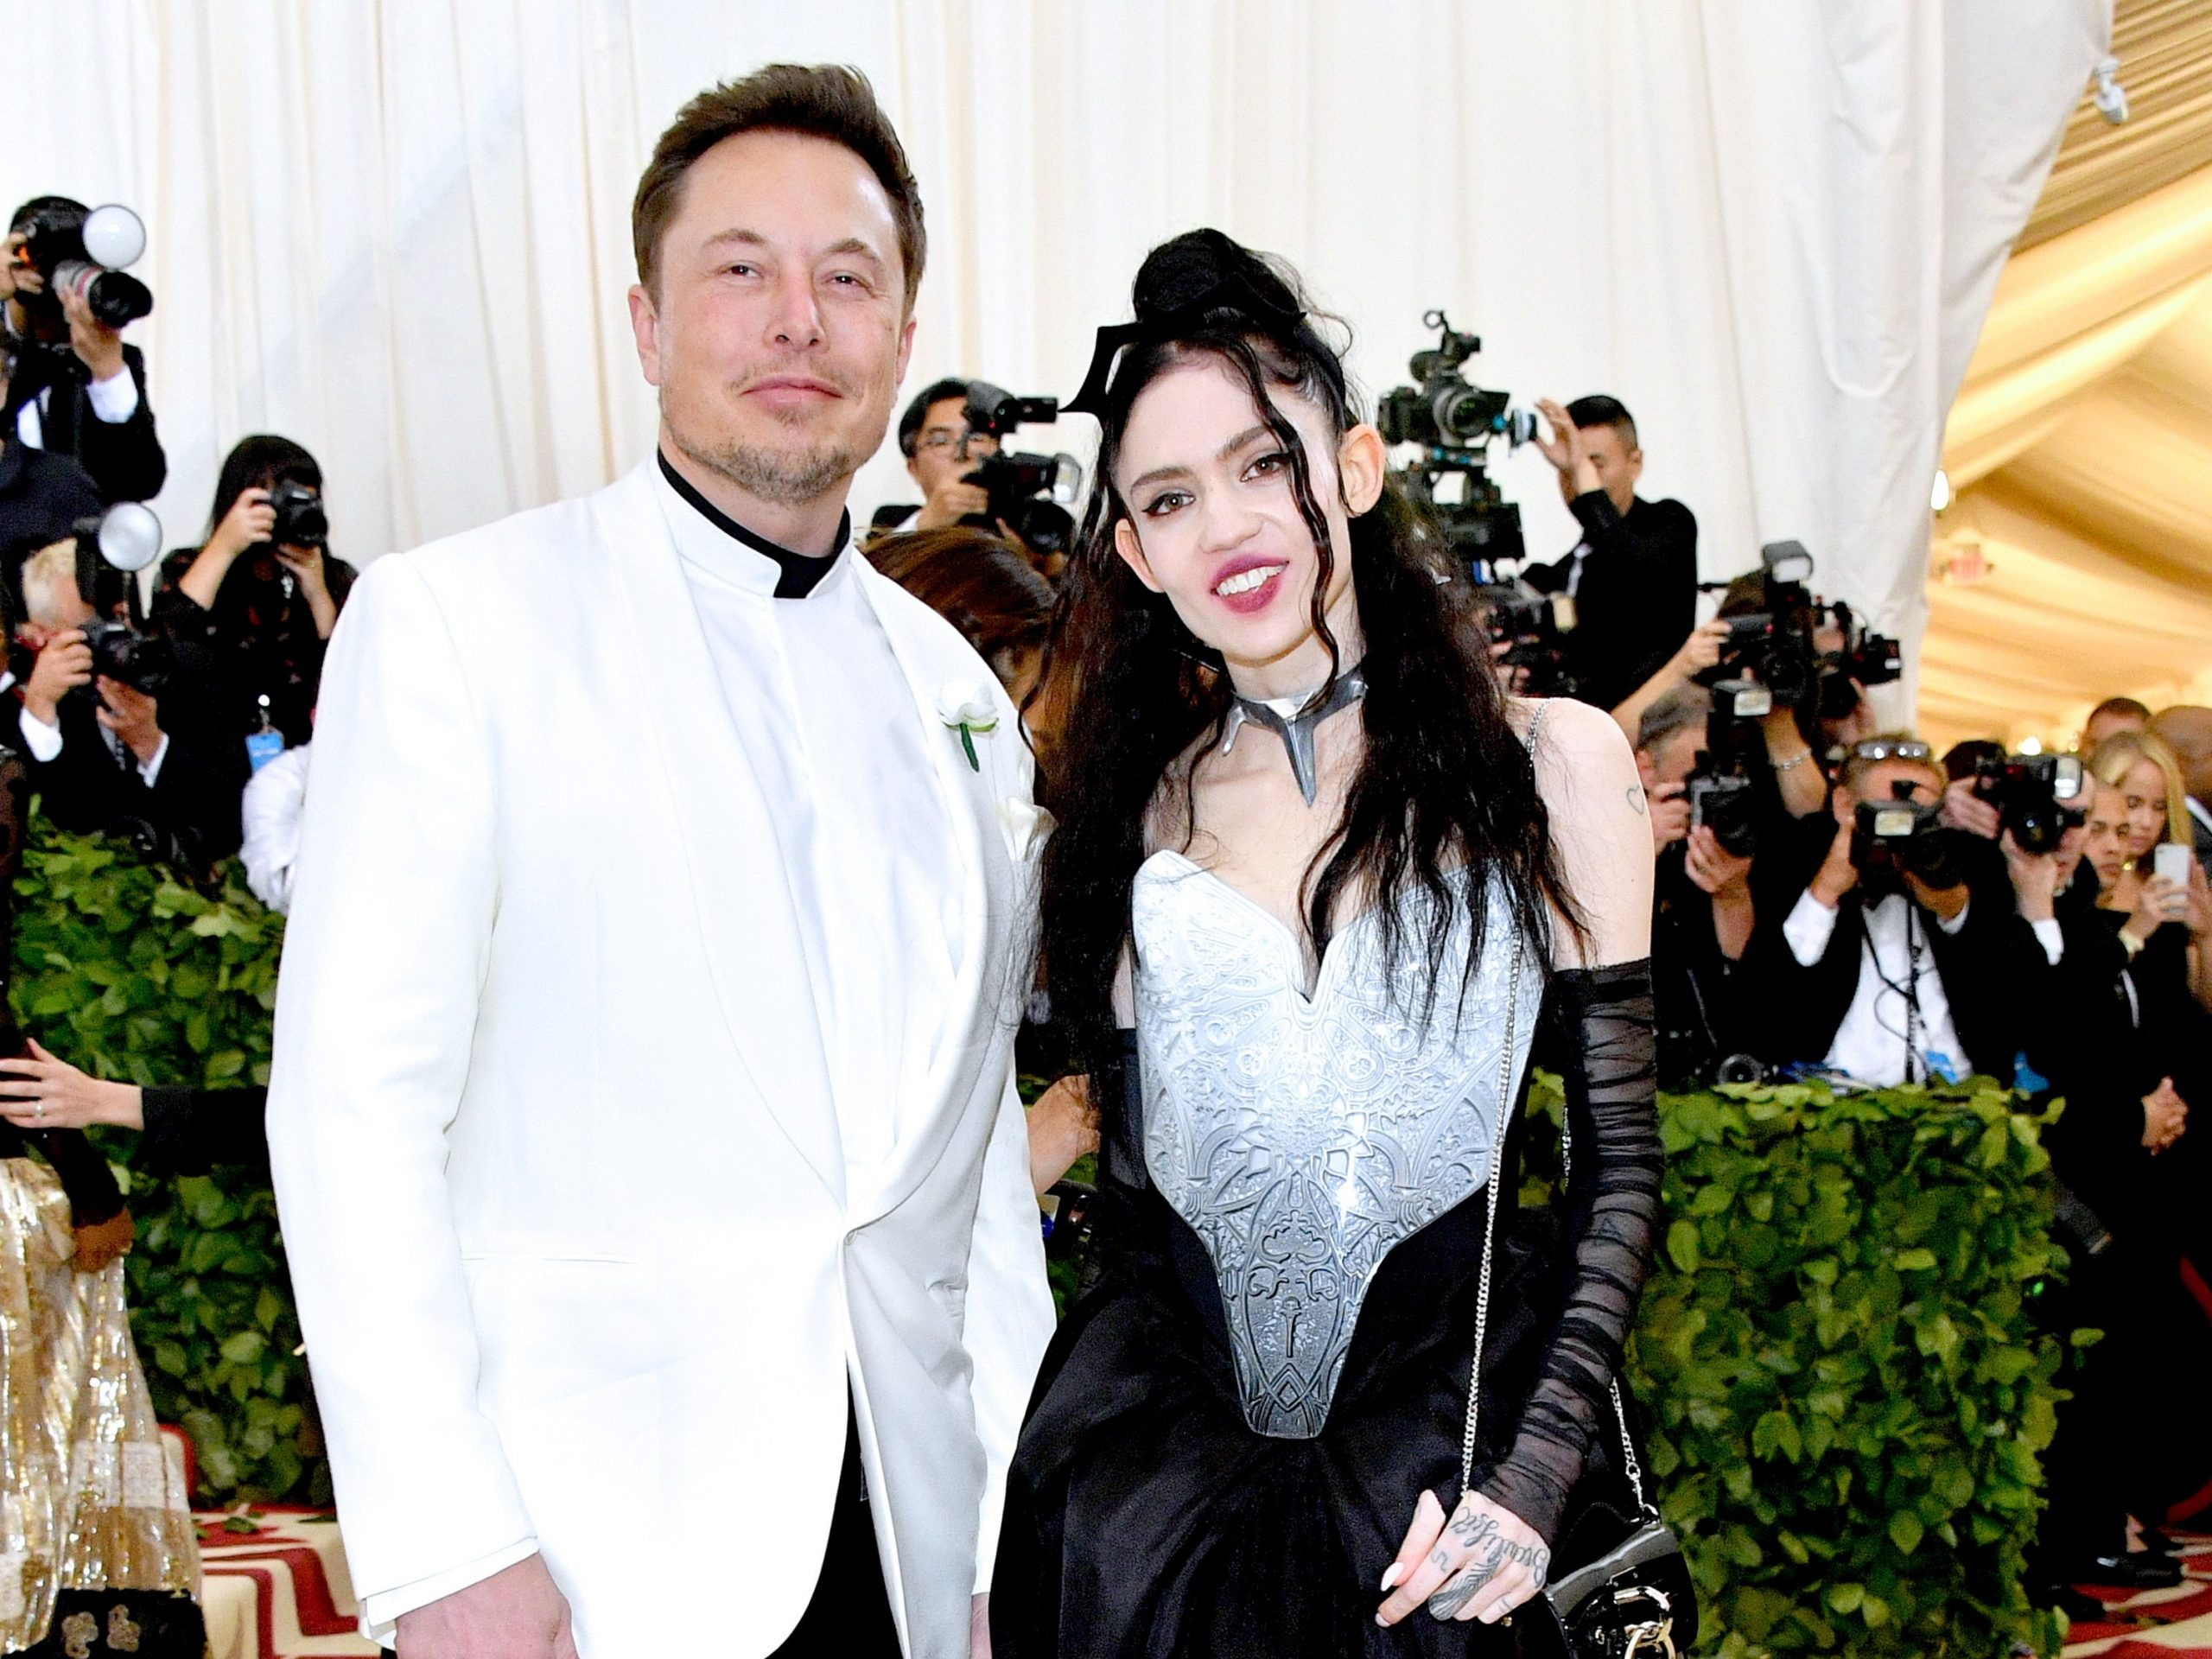 Elon Musk's Girlfriend Name, Wife Name and Dating Timeline